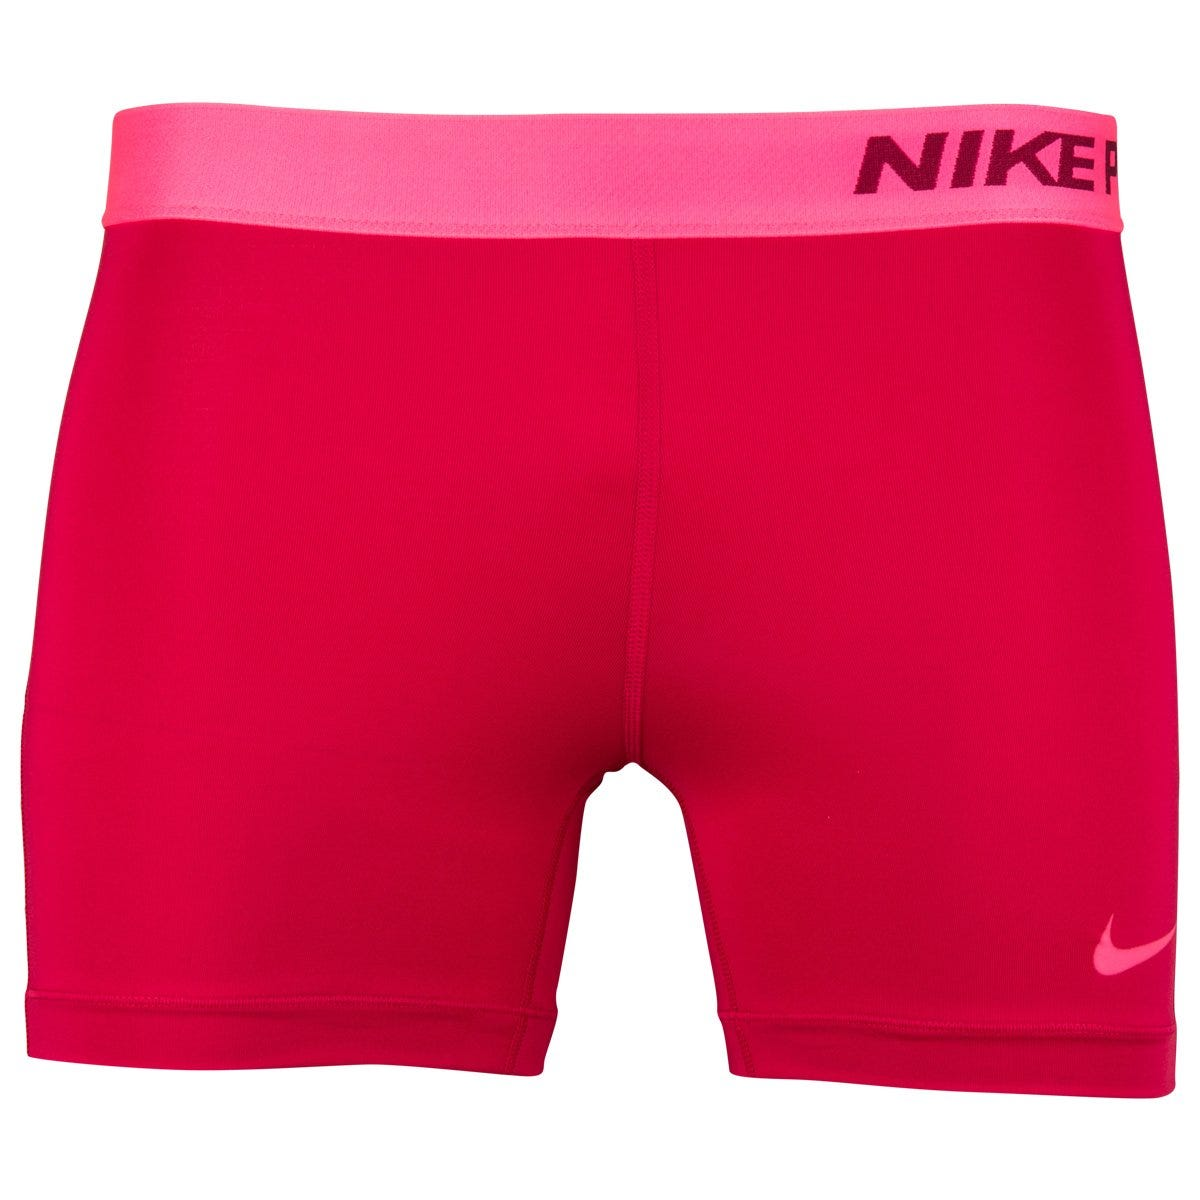 Nike Black/White Softball Pro Training Short - Womens Size X-Small